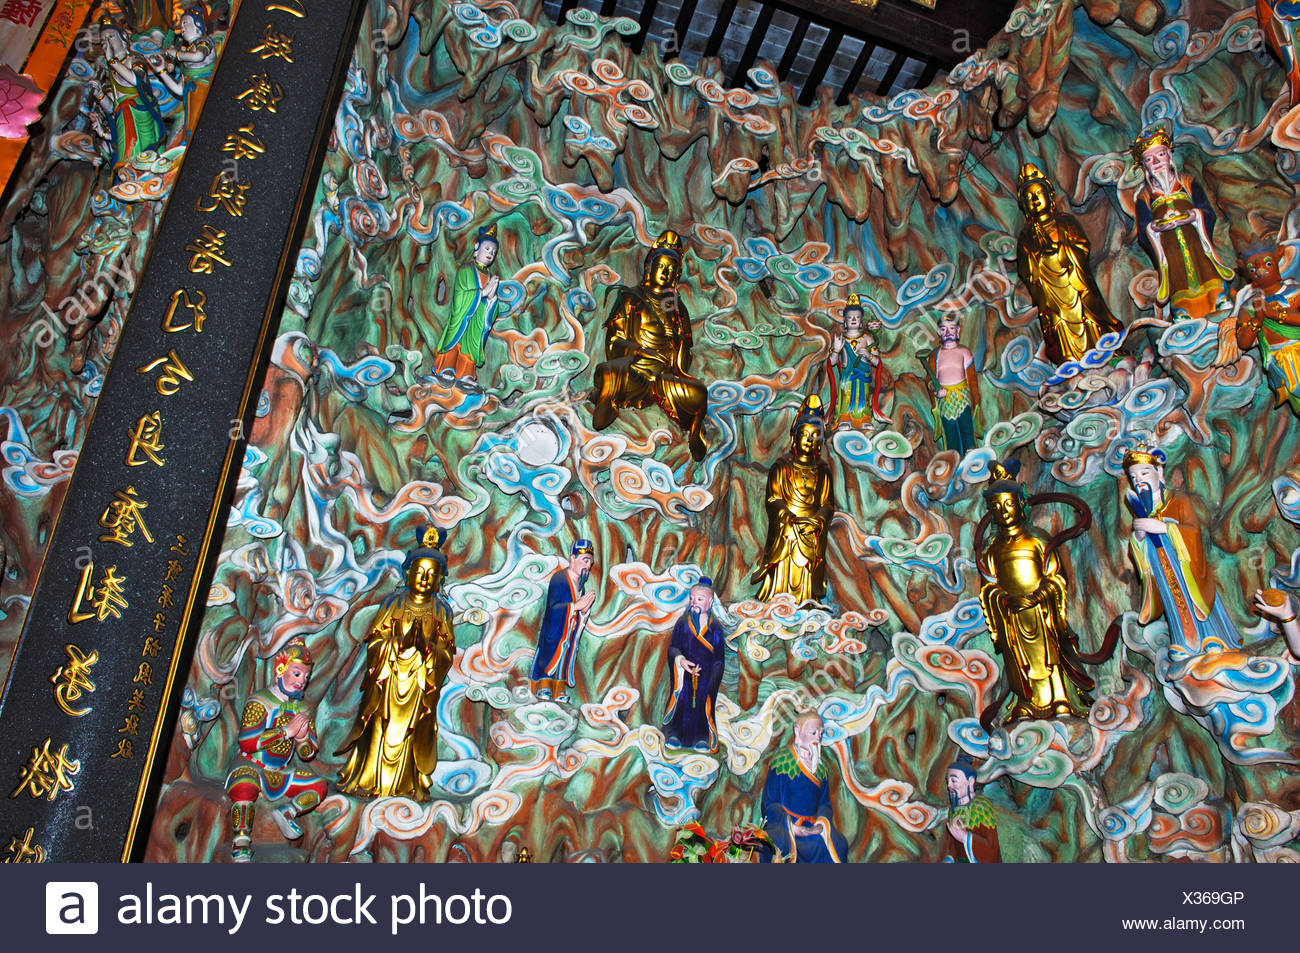 Figurines, gods' heaven, Longhua temple, Shanghai, China - Stock Image